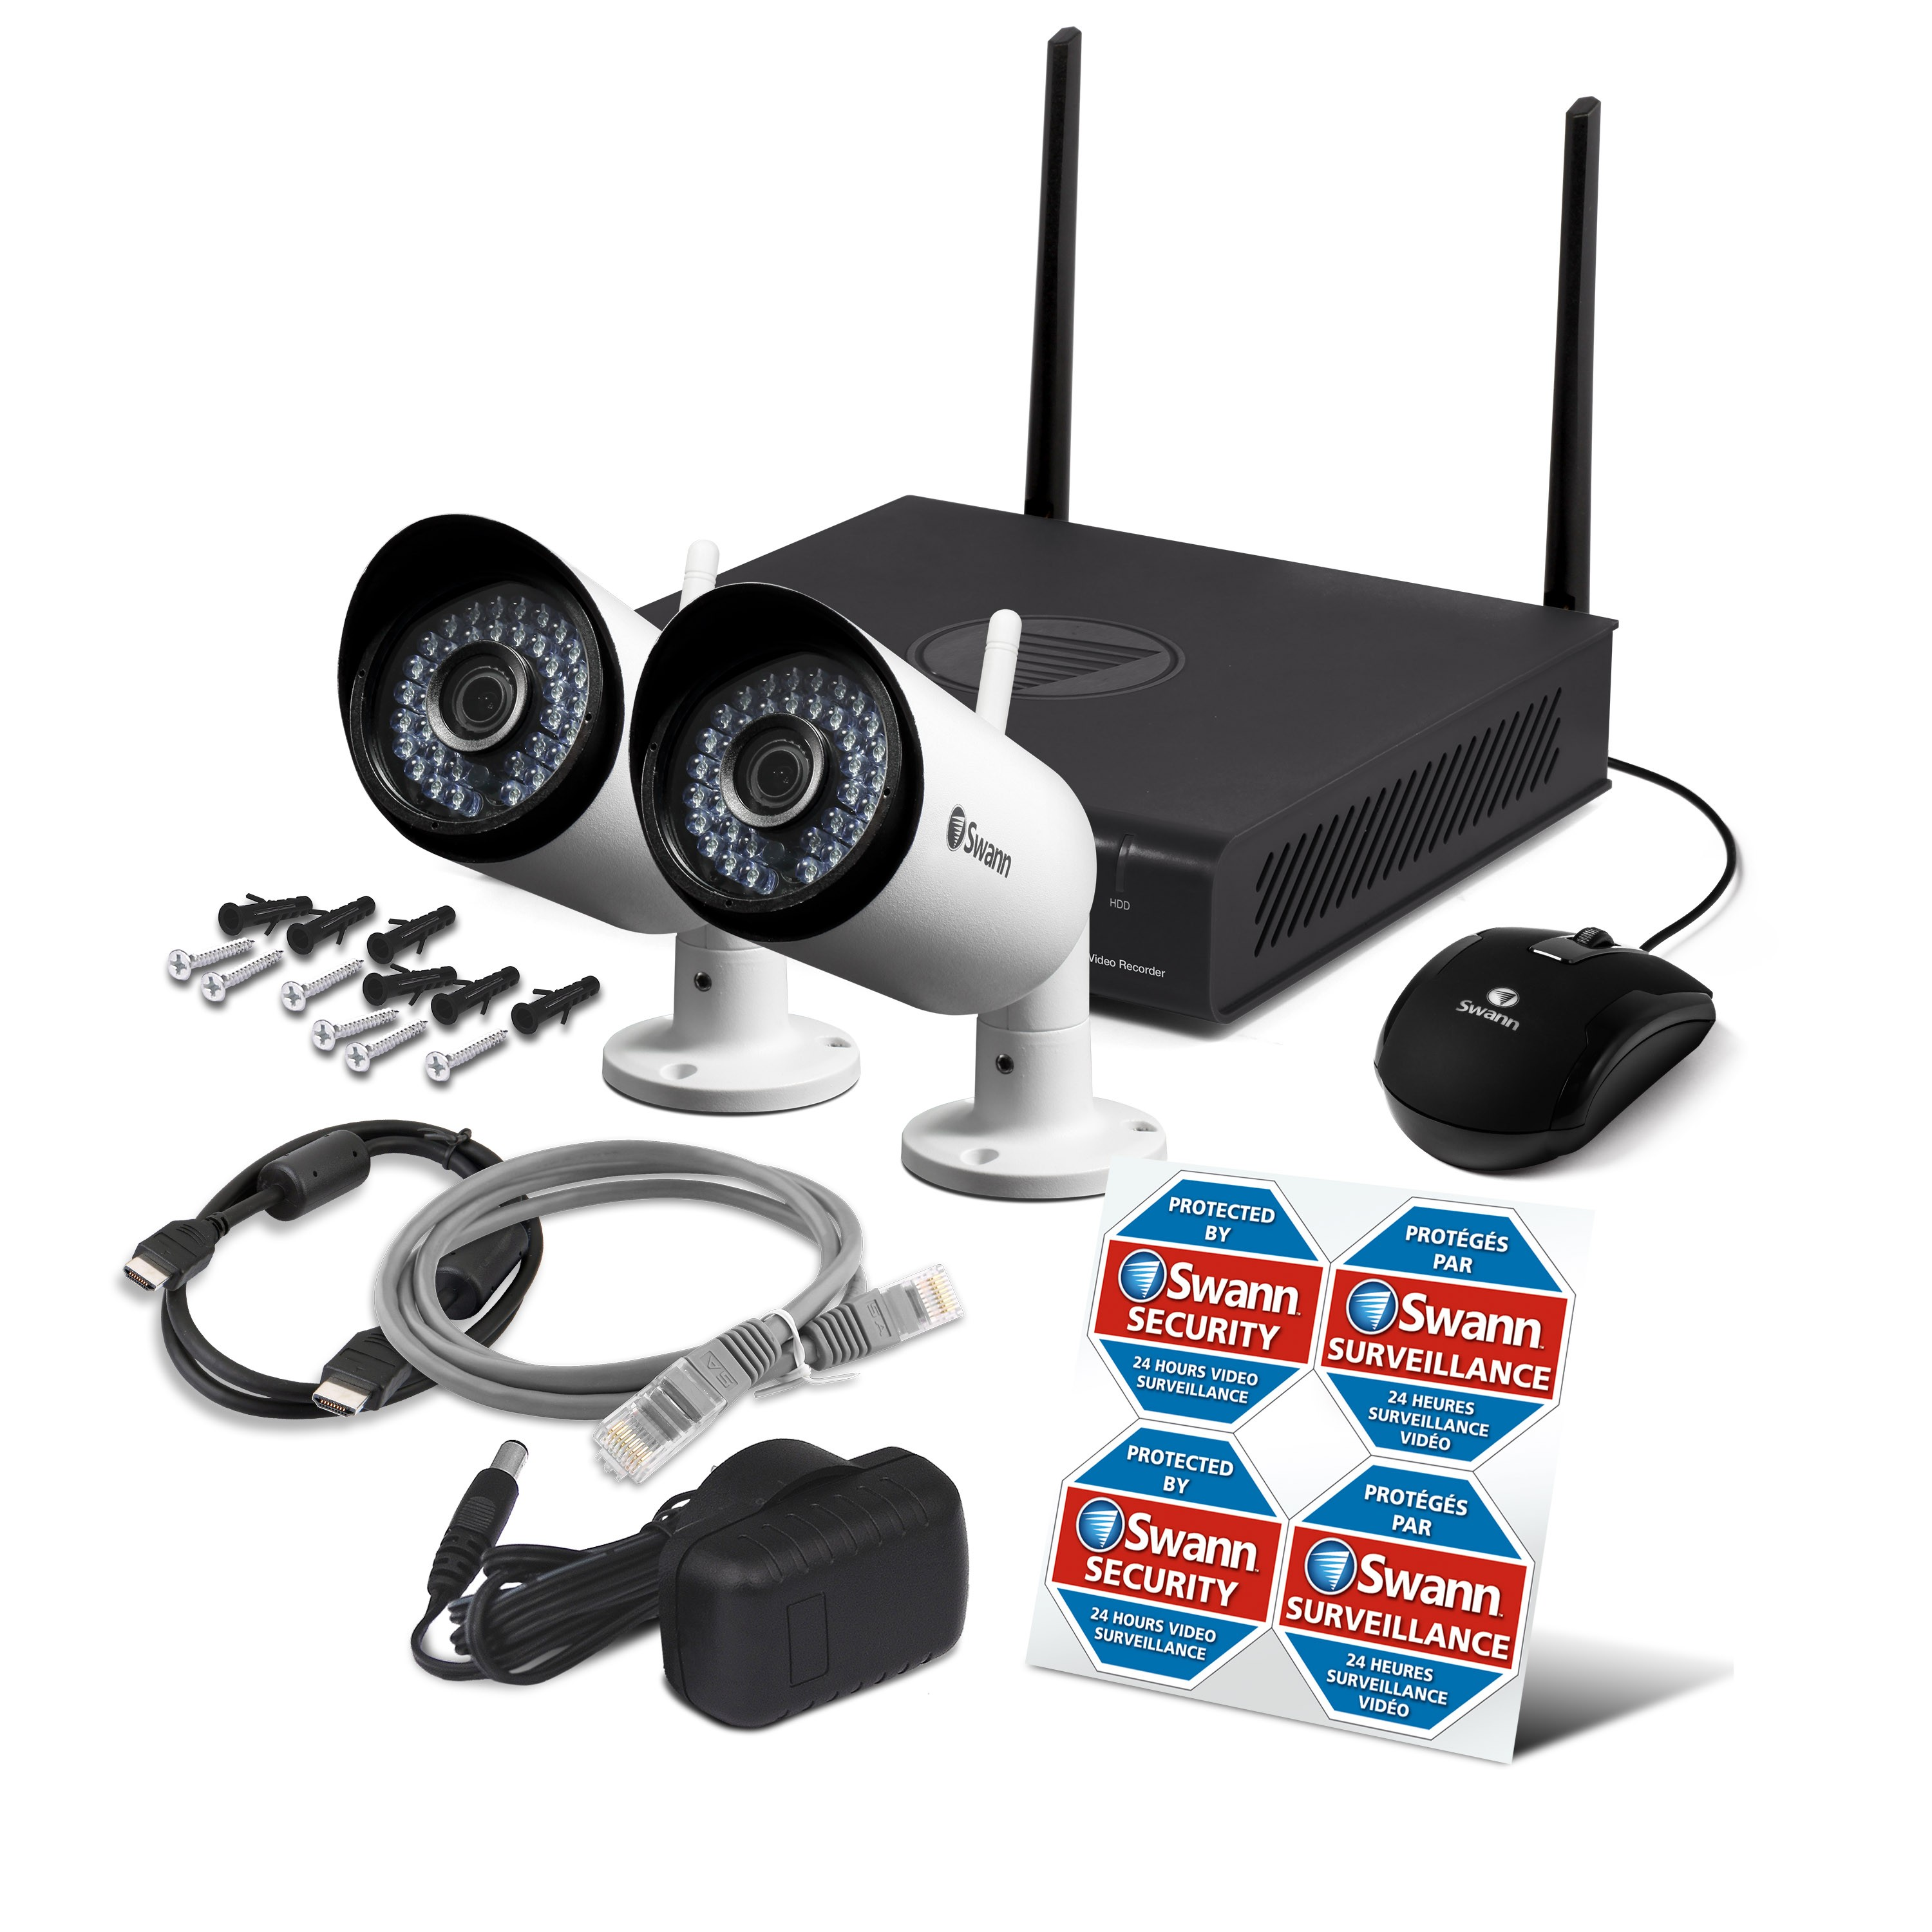 Nvw 485 Wi Fi Hd Security System Monitoring With 2 X Wireless Schematic 1080p Day Night Uk